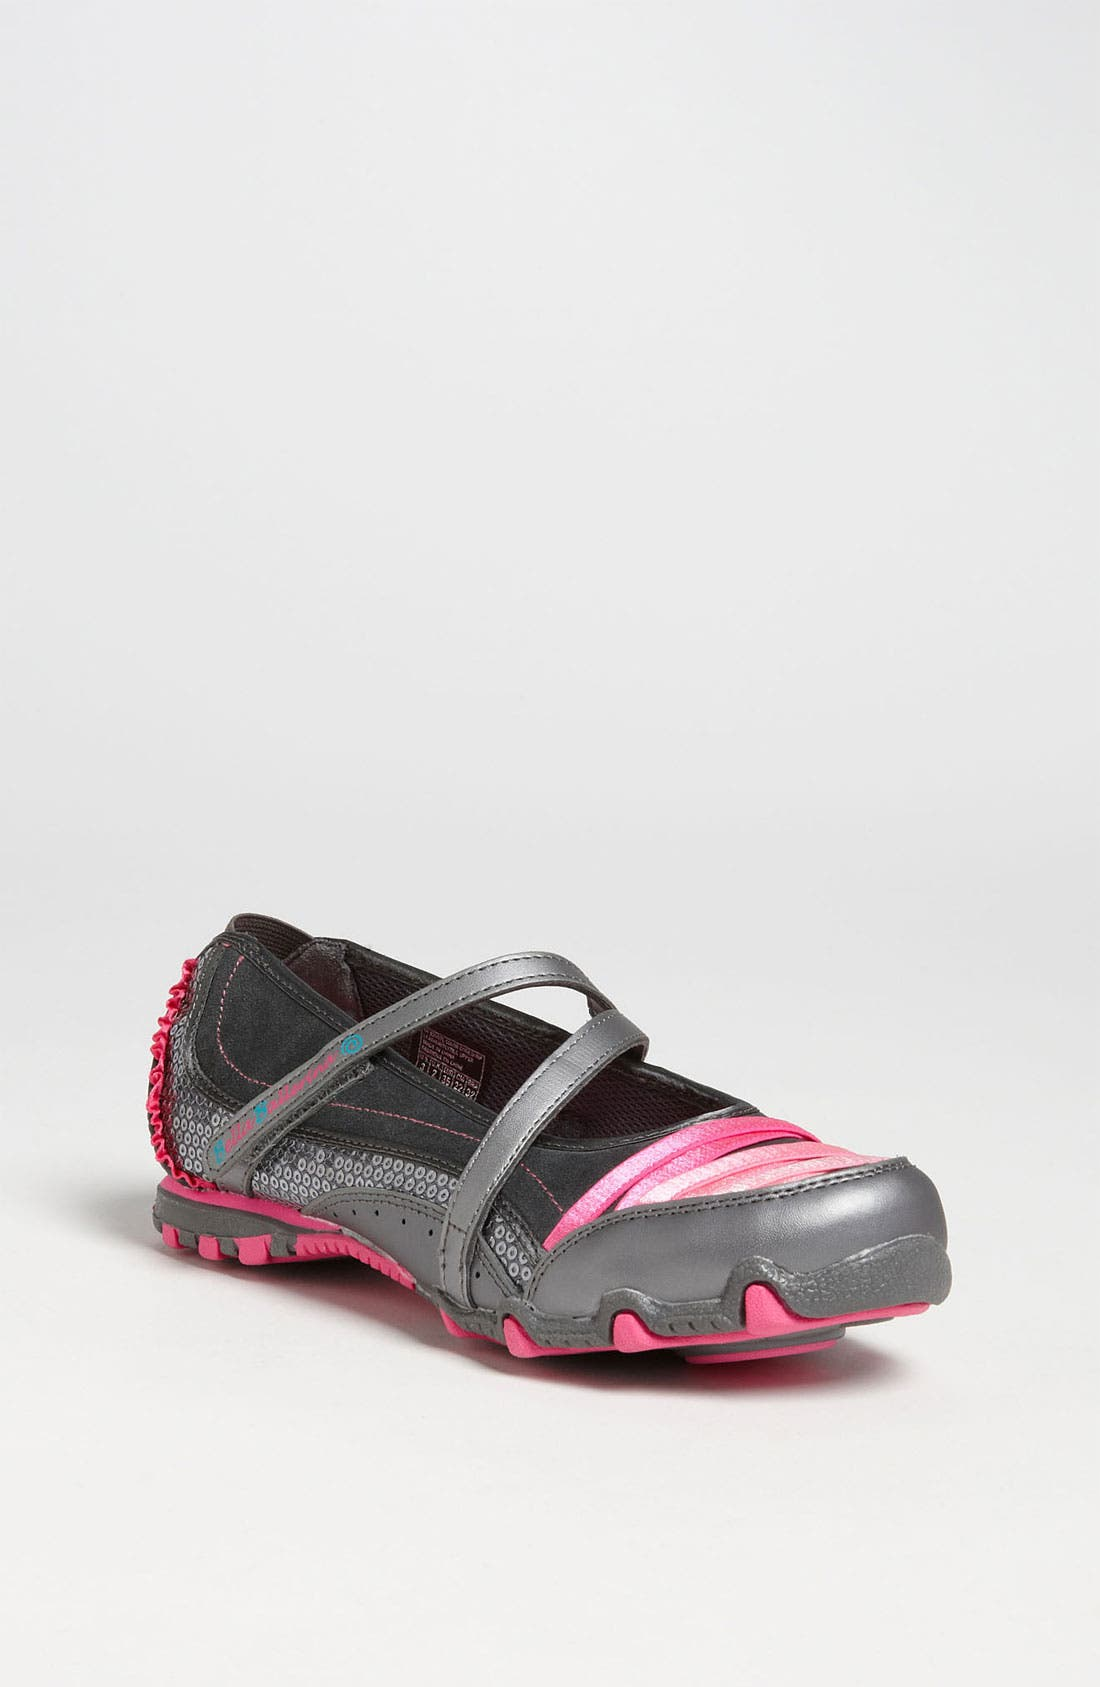 Main Image - SKECHERS 'Bella Ballerina - Prancy' Sneaker (Toddler & Little Kid)